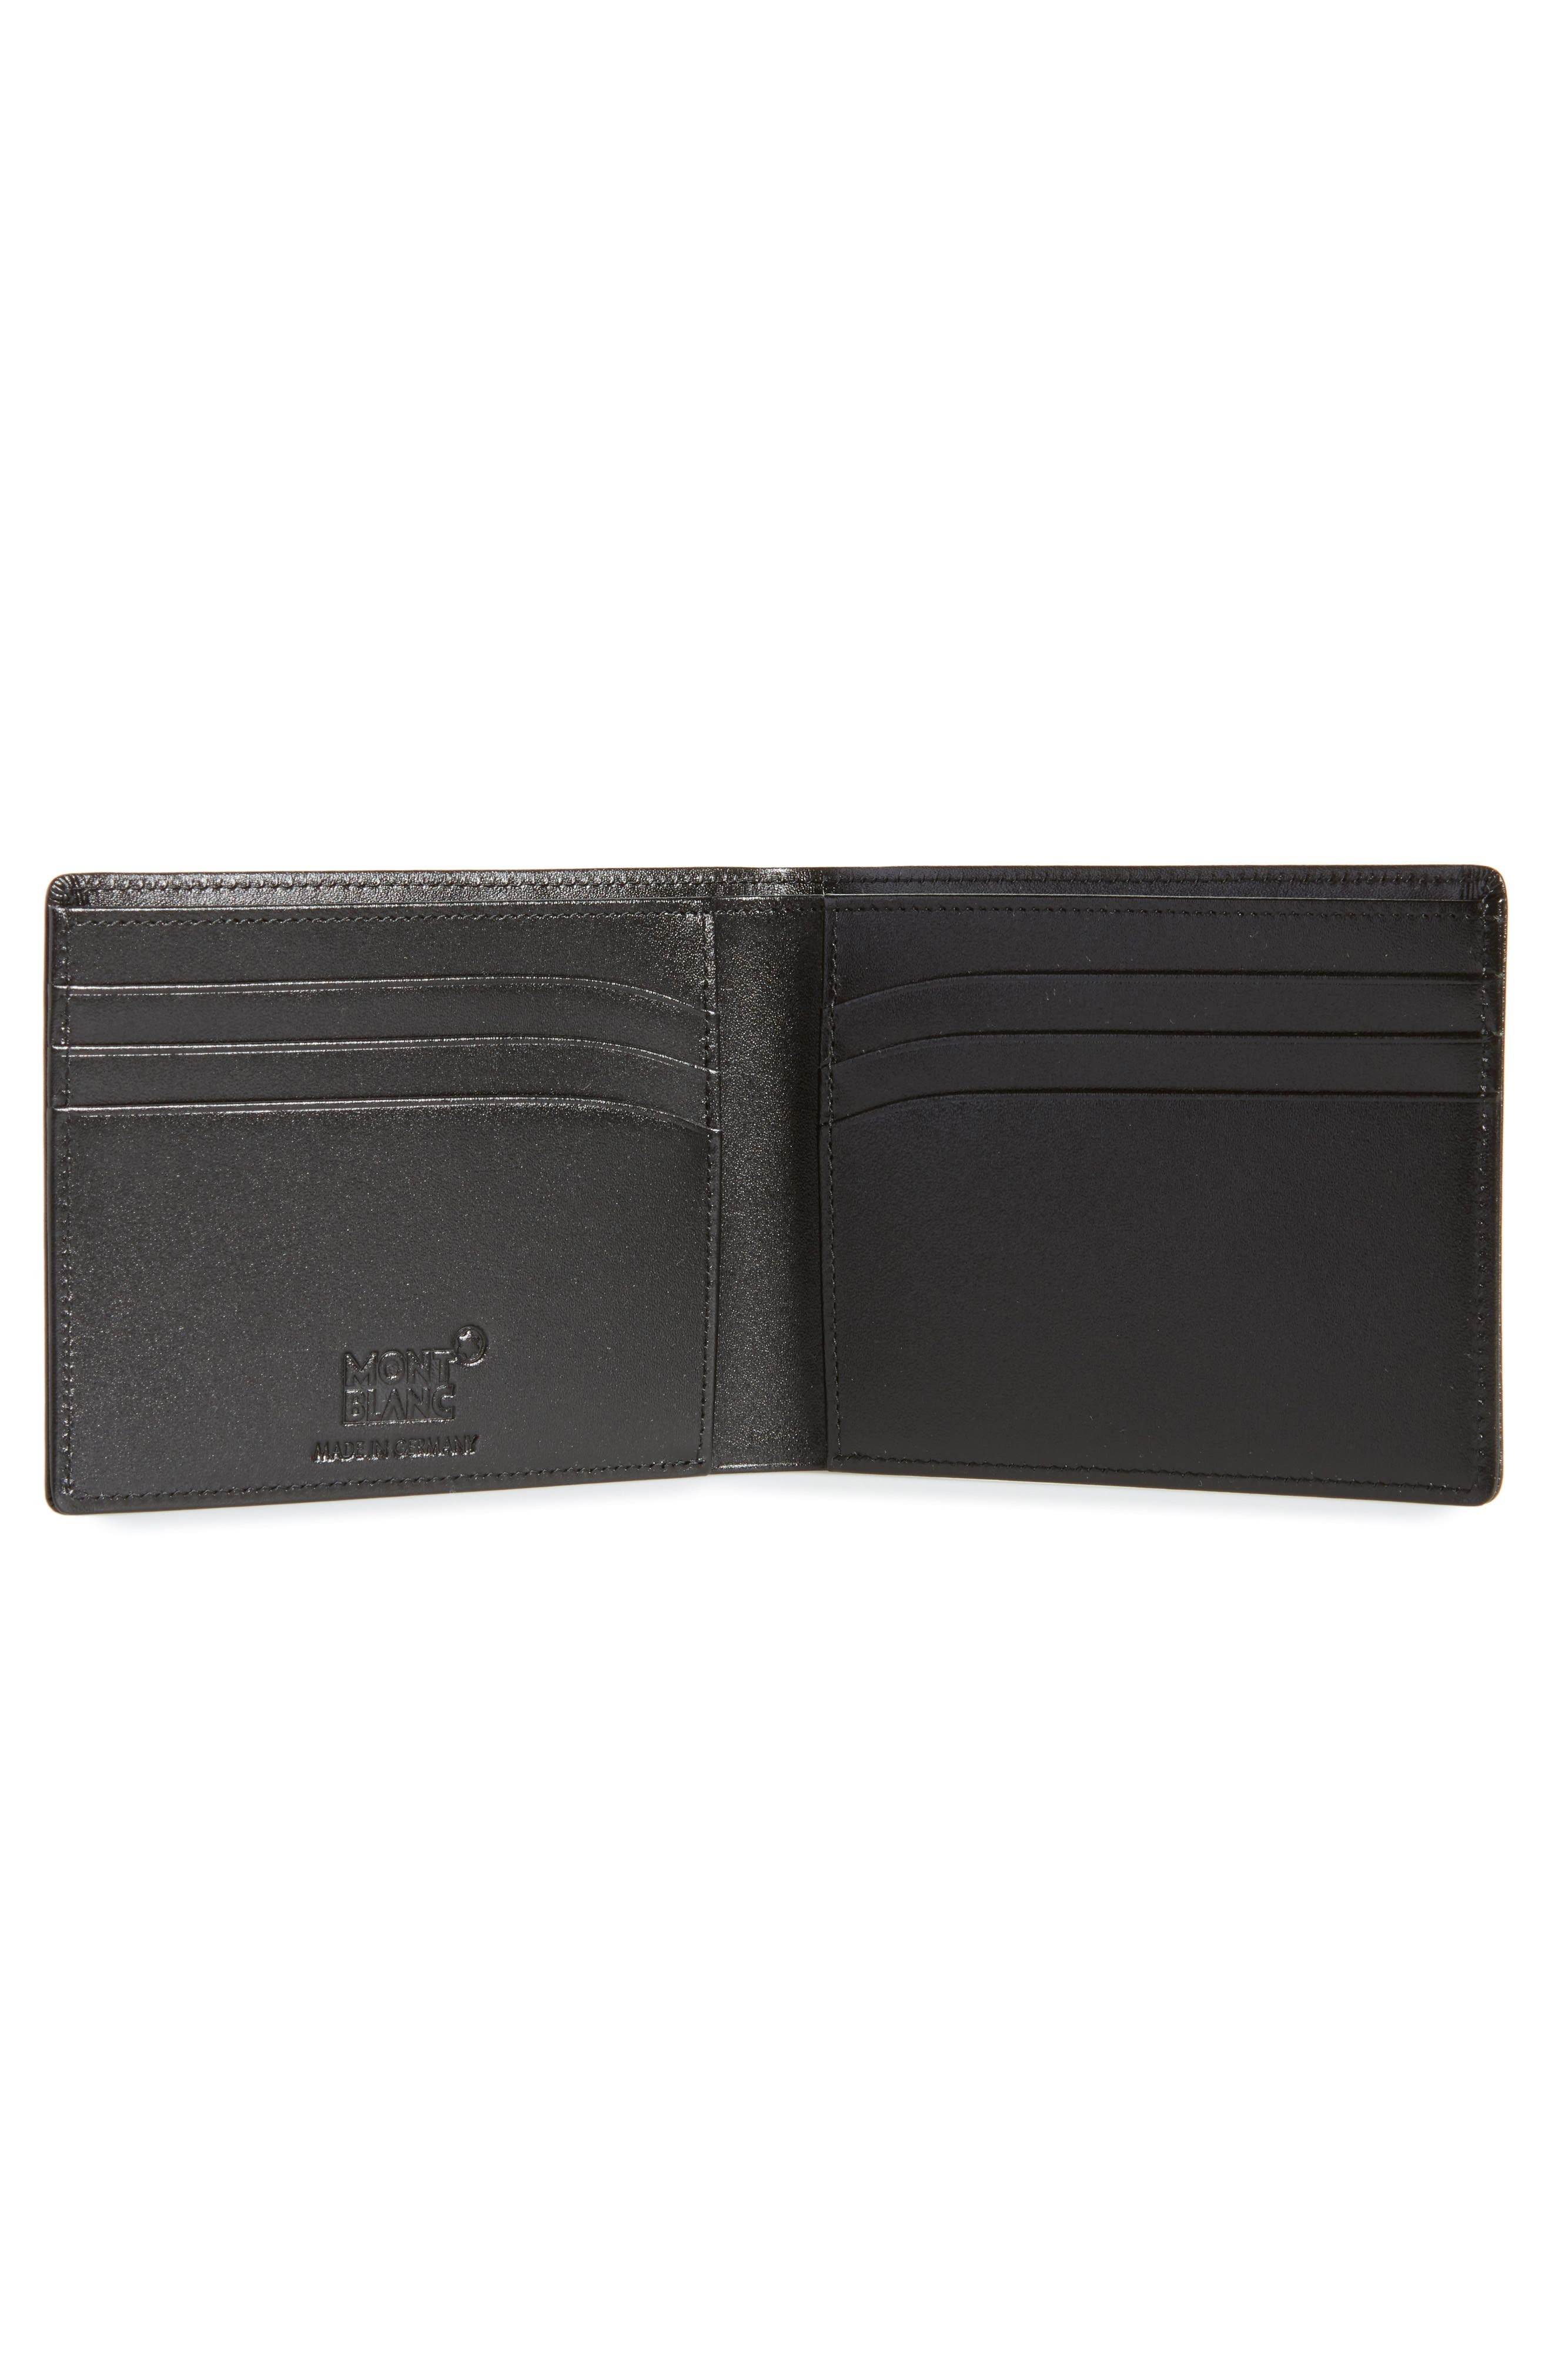 Bifold Leather Wallet,                             Alternate thumbnail 2, color,                             001